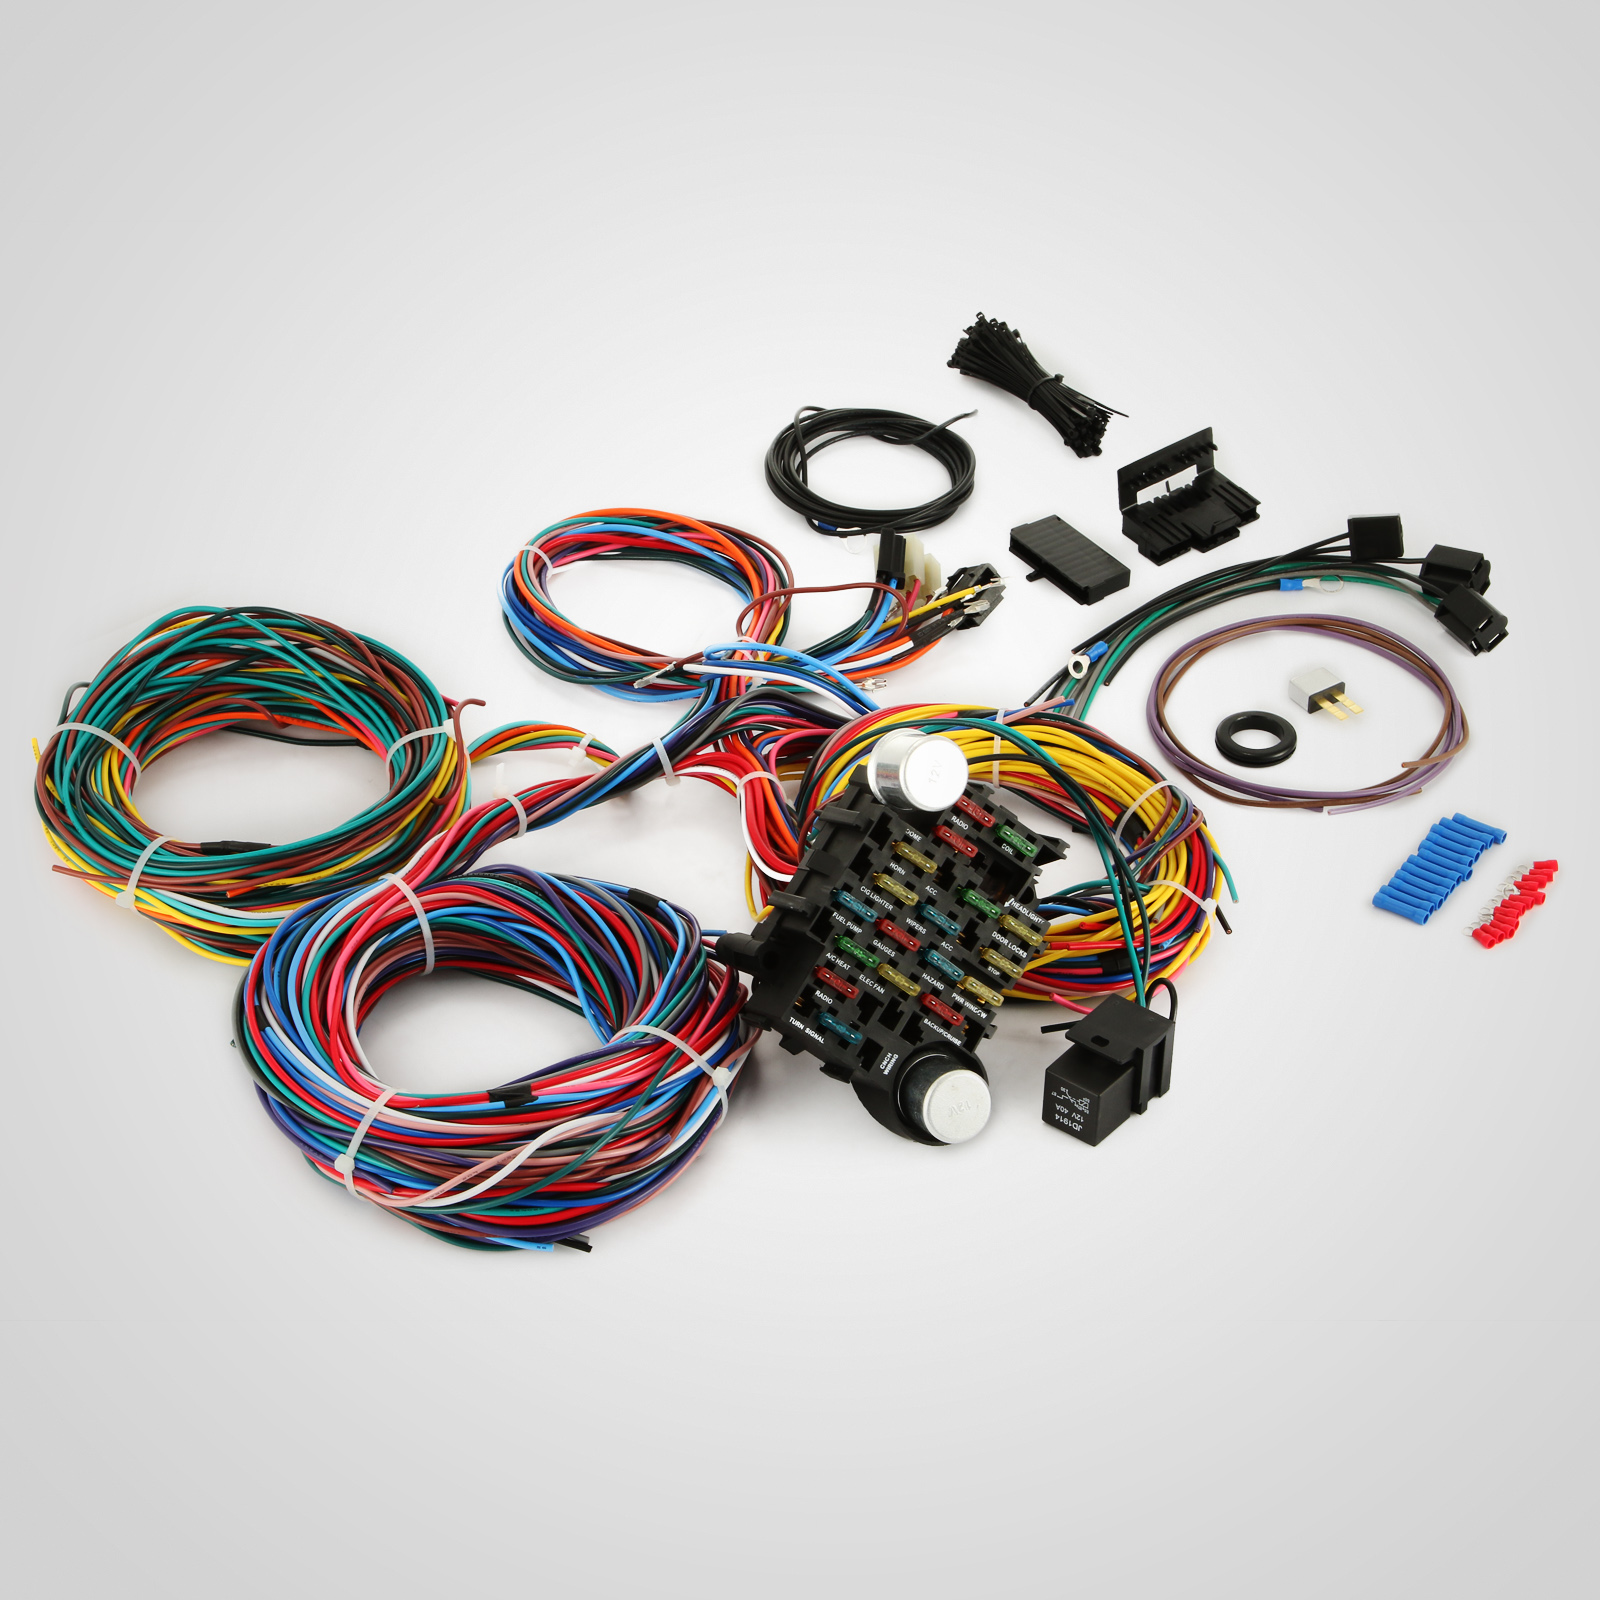 Universal Gm Wiring Harness Opinions About Diagram 1957 Chevy Hei 21 Circuit Ez Wires Install Mopar Ebay 22 Turn Signal